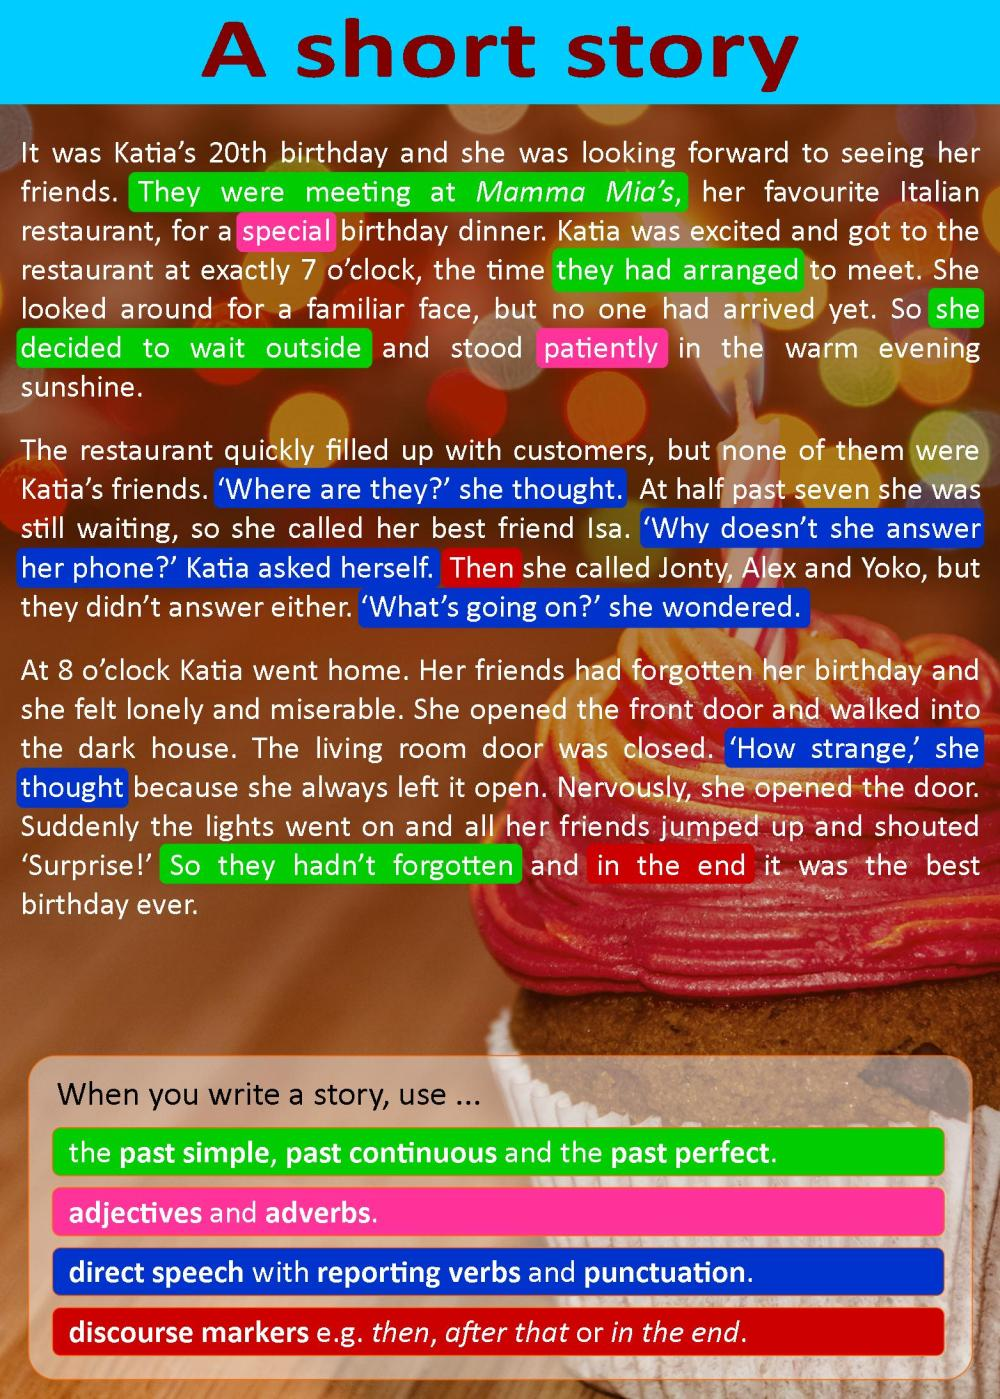 medium resolution of A short story   LearnEnglish Teens - British Council